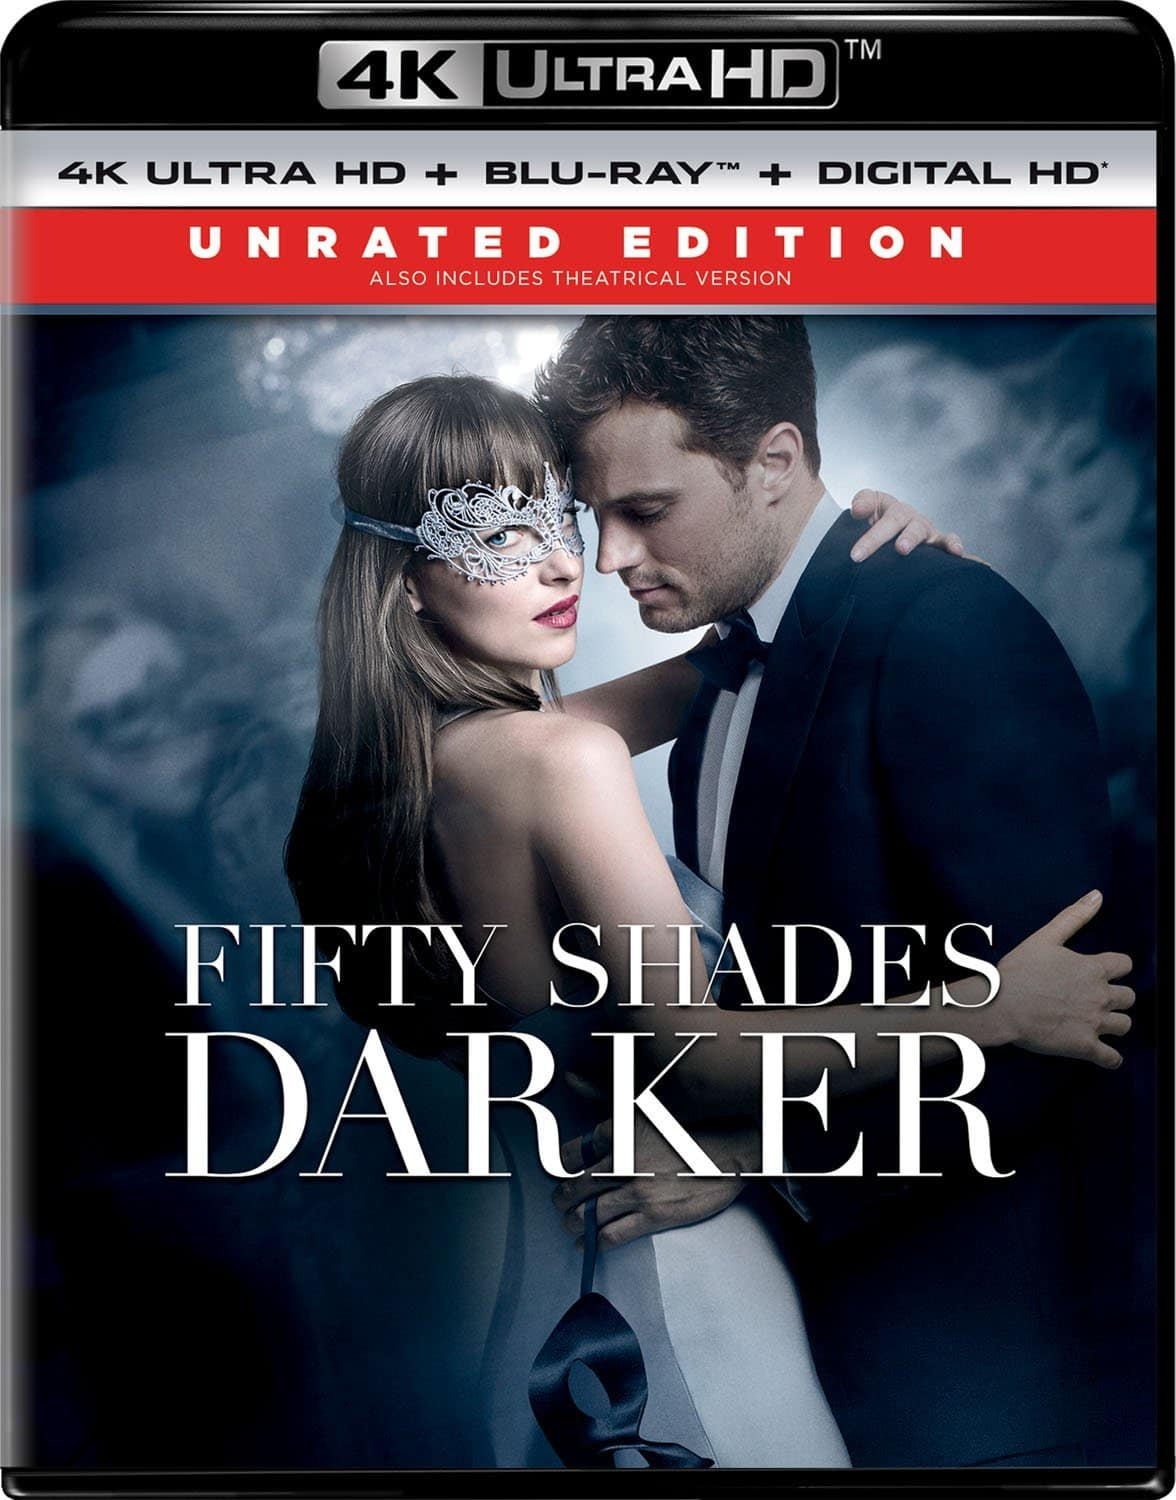 Fifty Shades Darker [Blu-ray + 4K] for $16.99 @Amazon